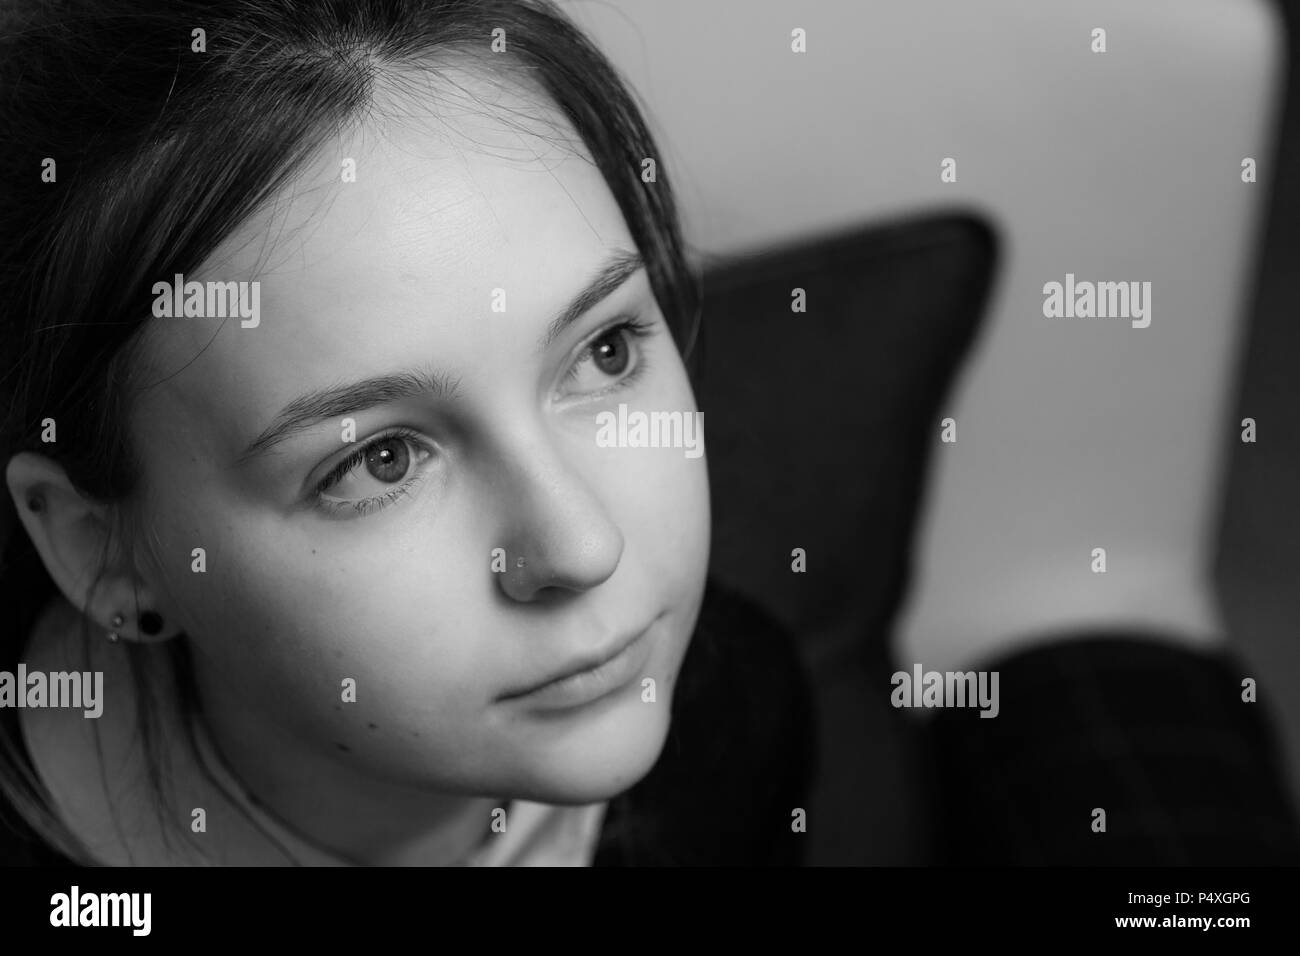 A portrait of a beautiful young woman looking up and away from the camera - Stock Image